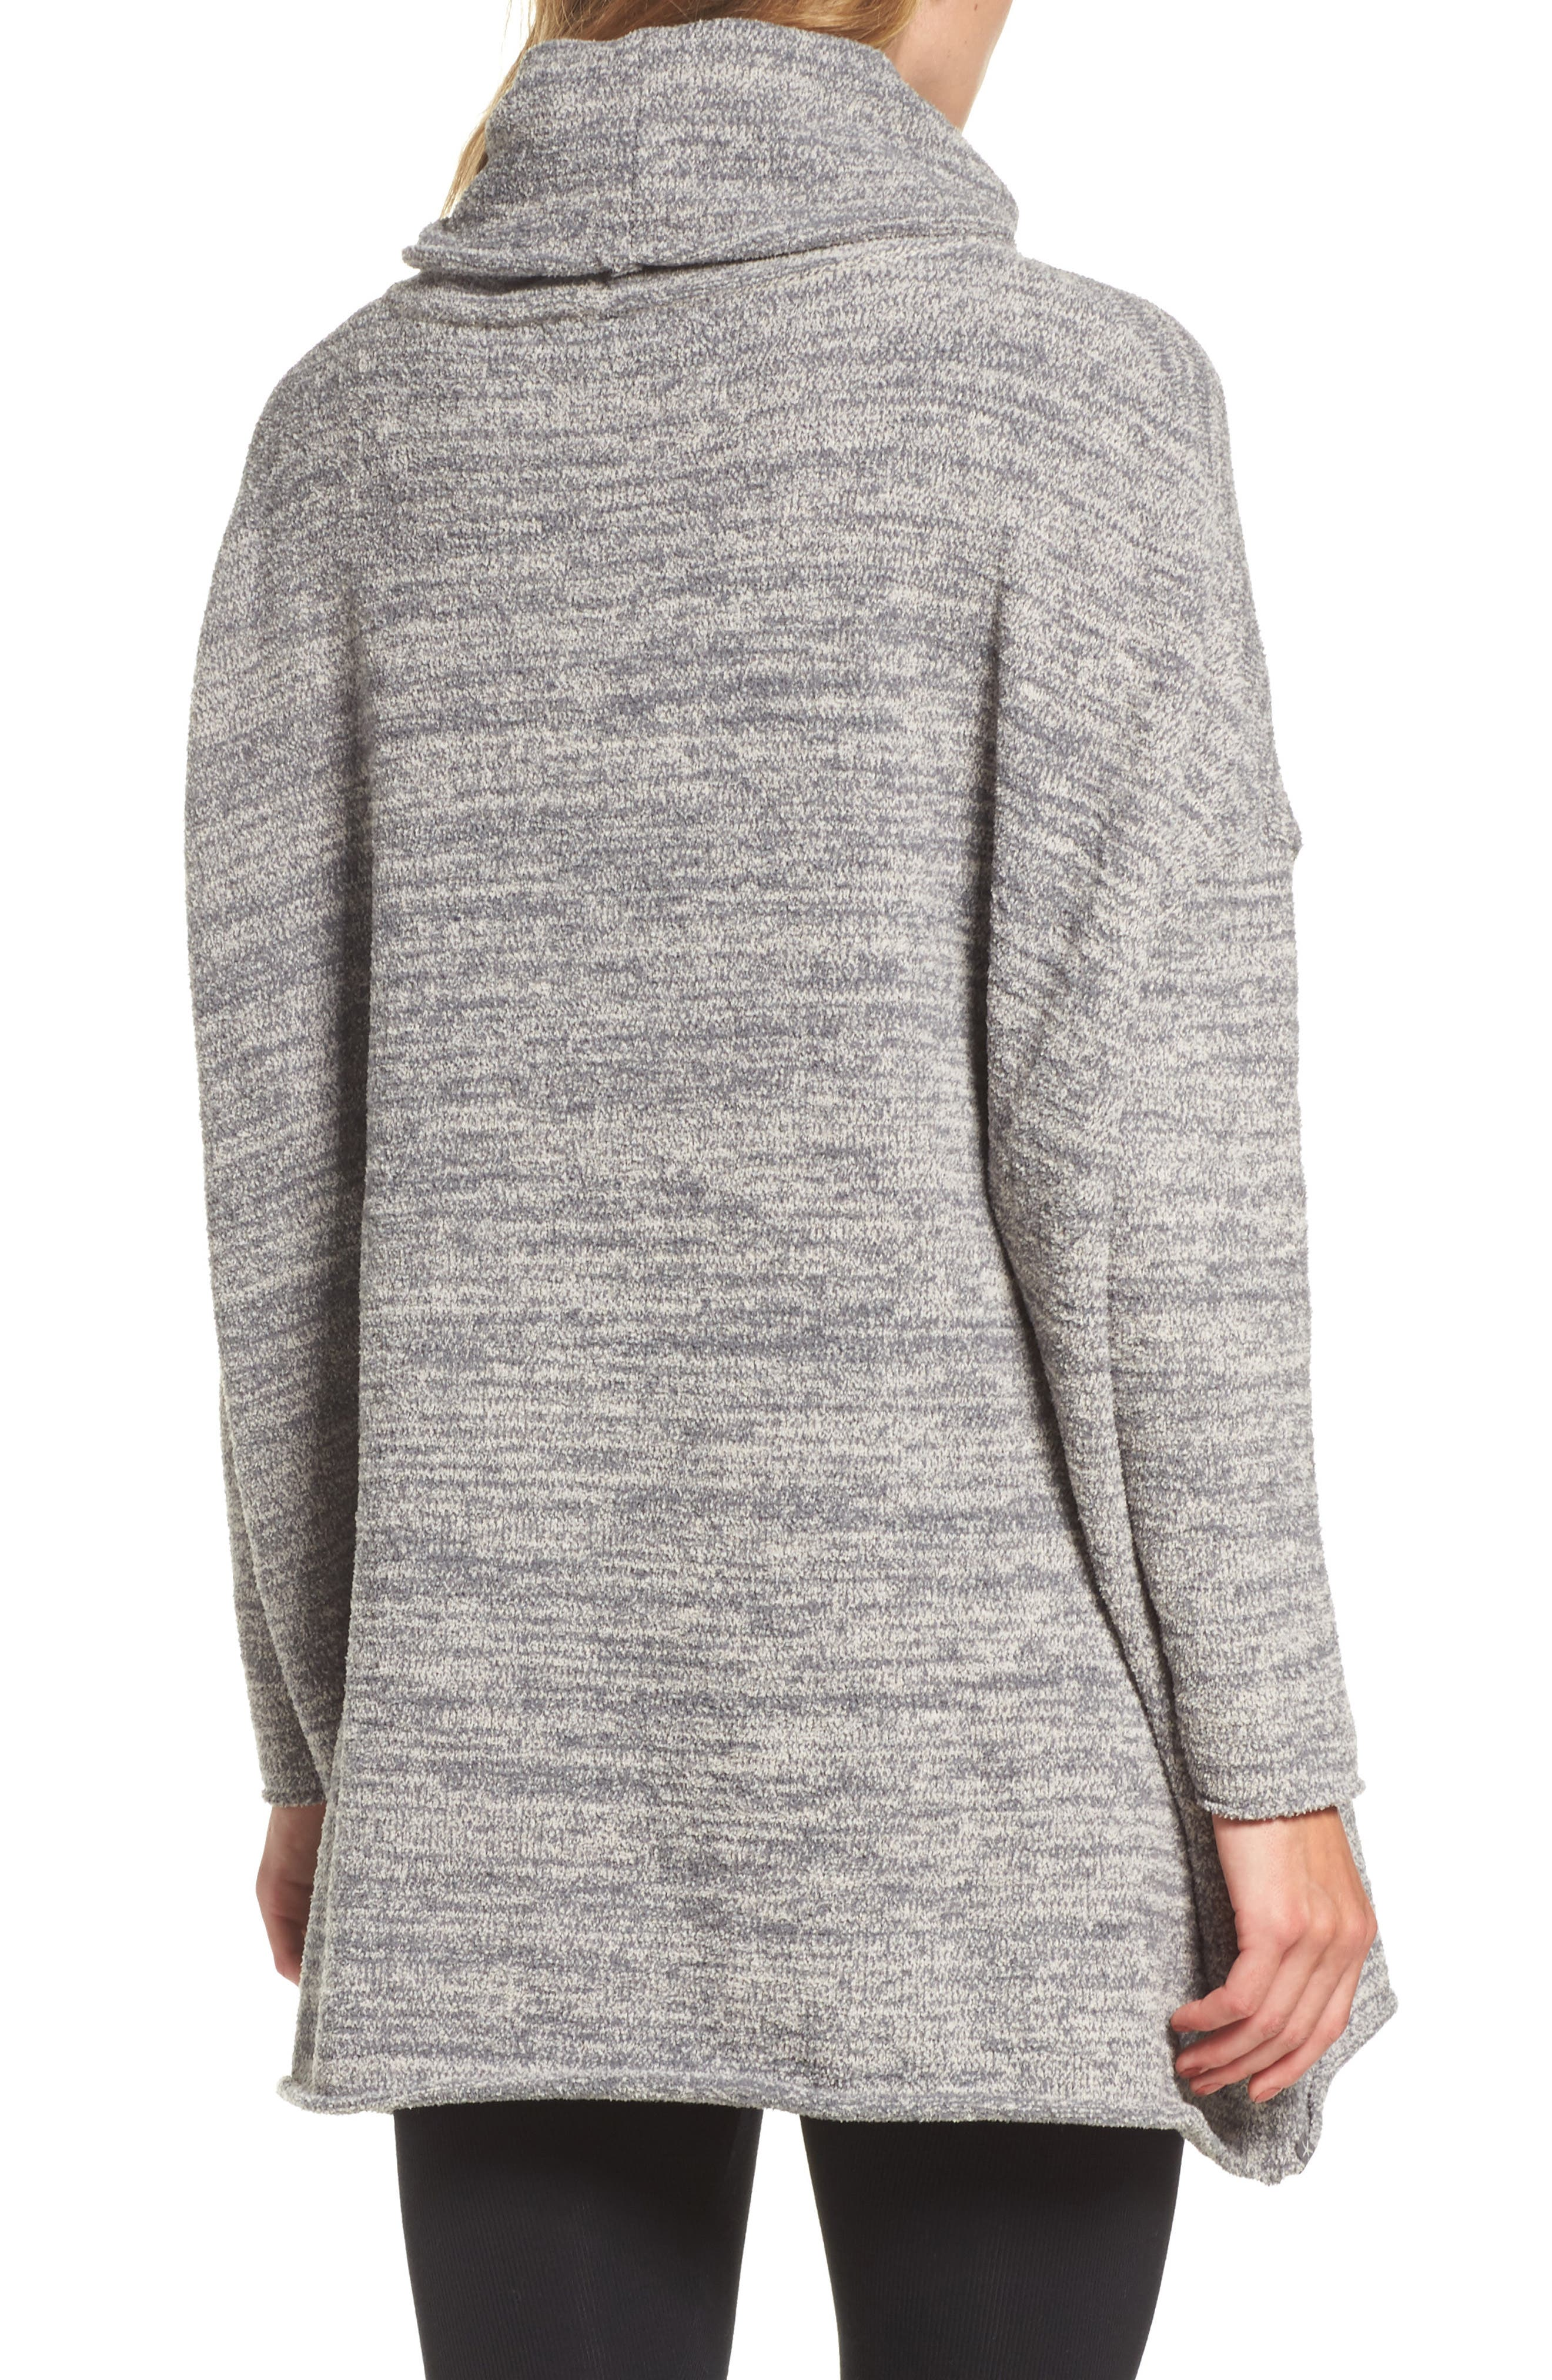 Cozychic<sup>®</sup> Lounge Pullover,                             Alternate thumbnail 2, color,                             GRAPHITE/ STONE HEATHERED